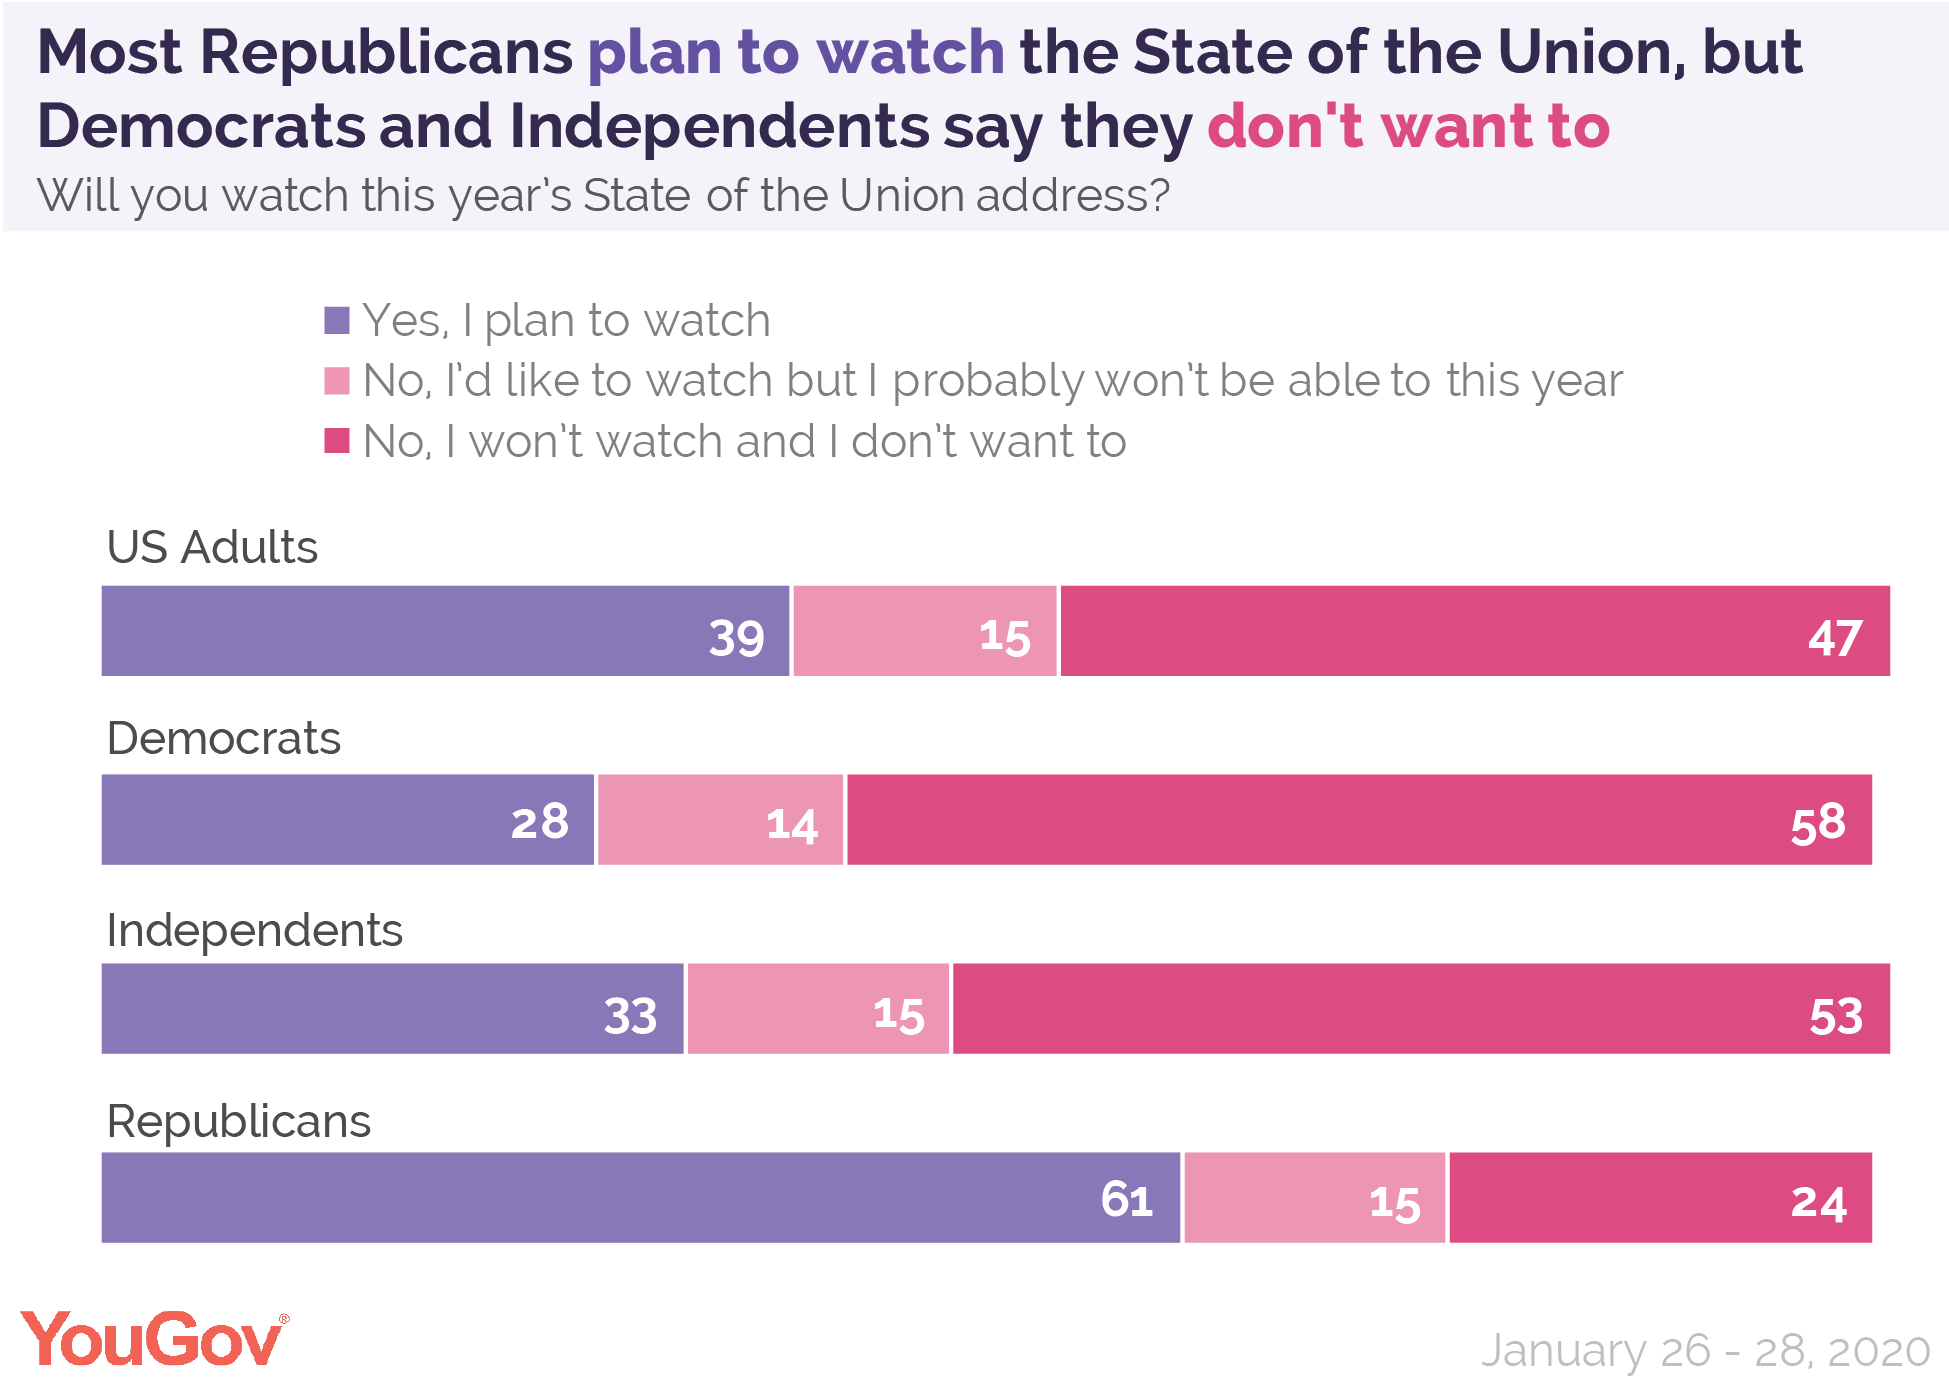 Most Republicans plan to watch the State of the Union